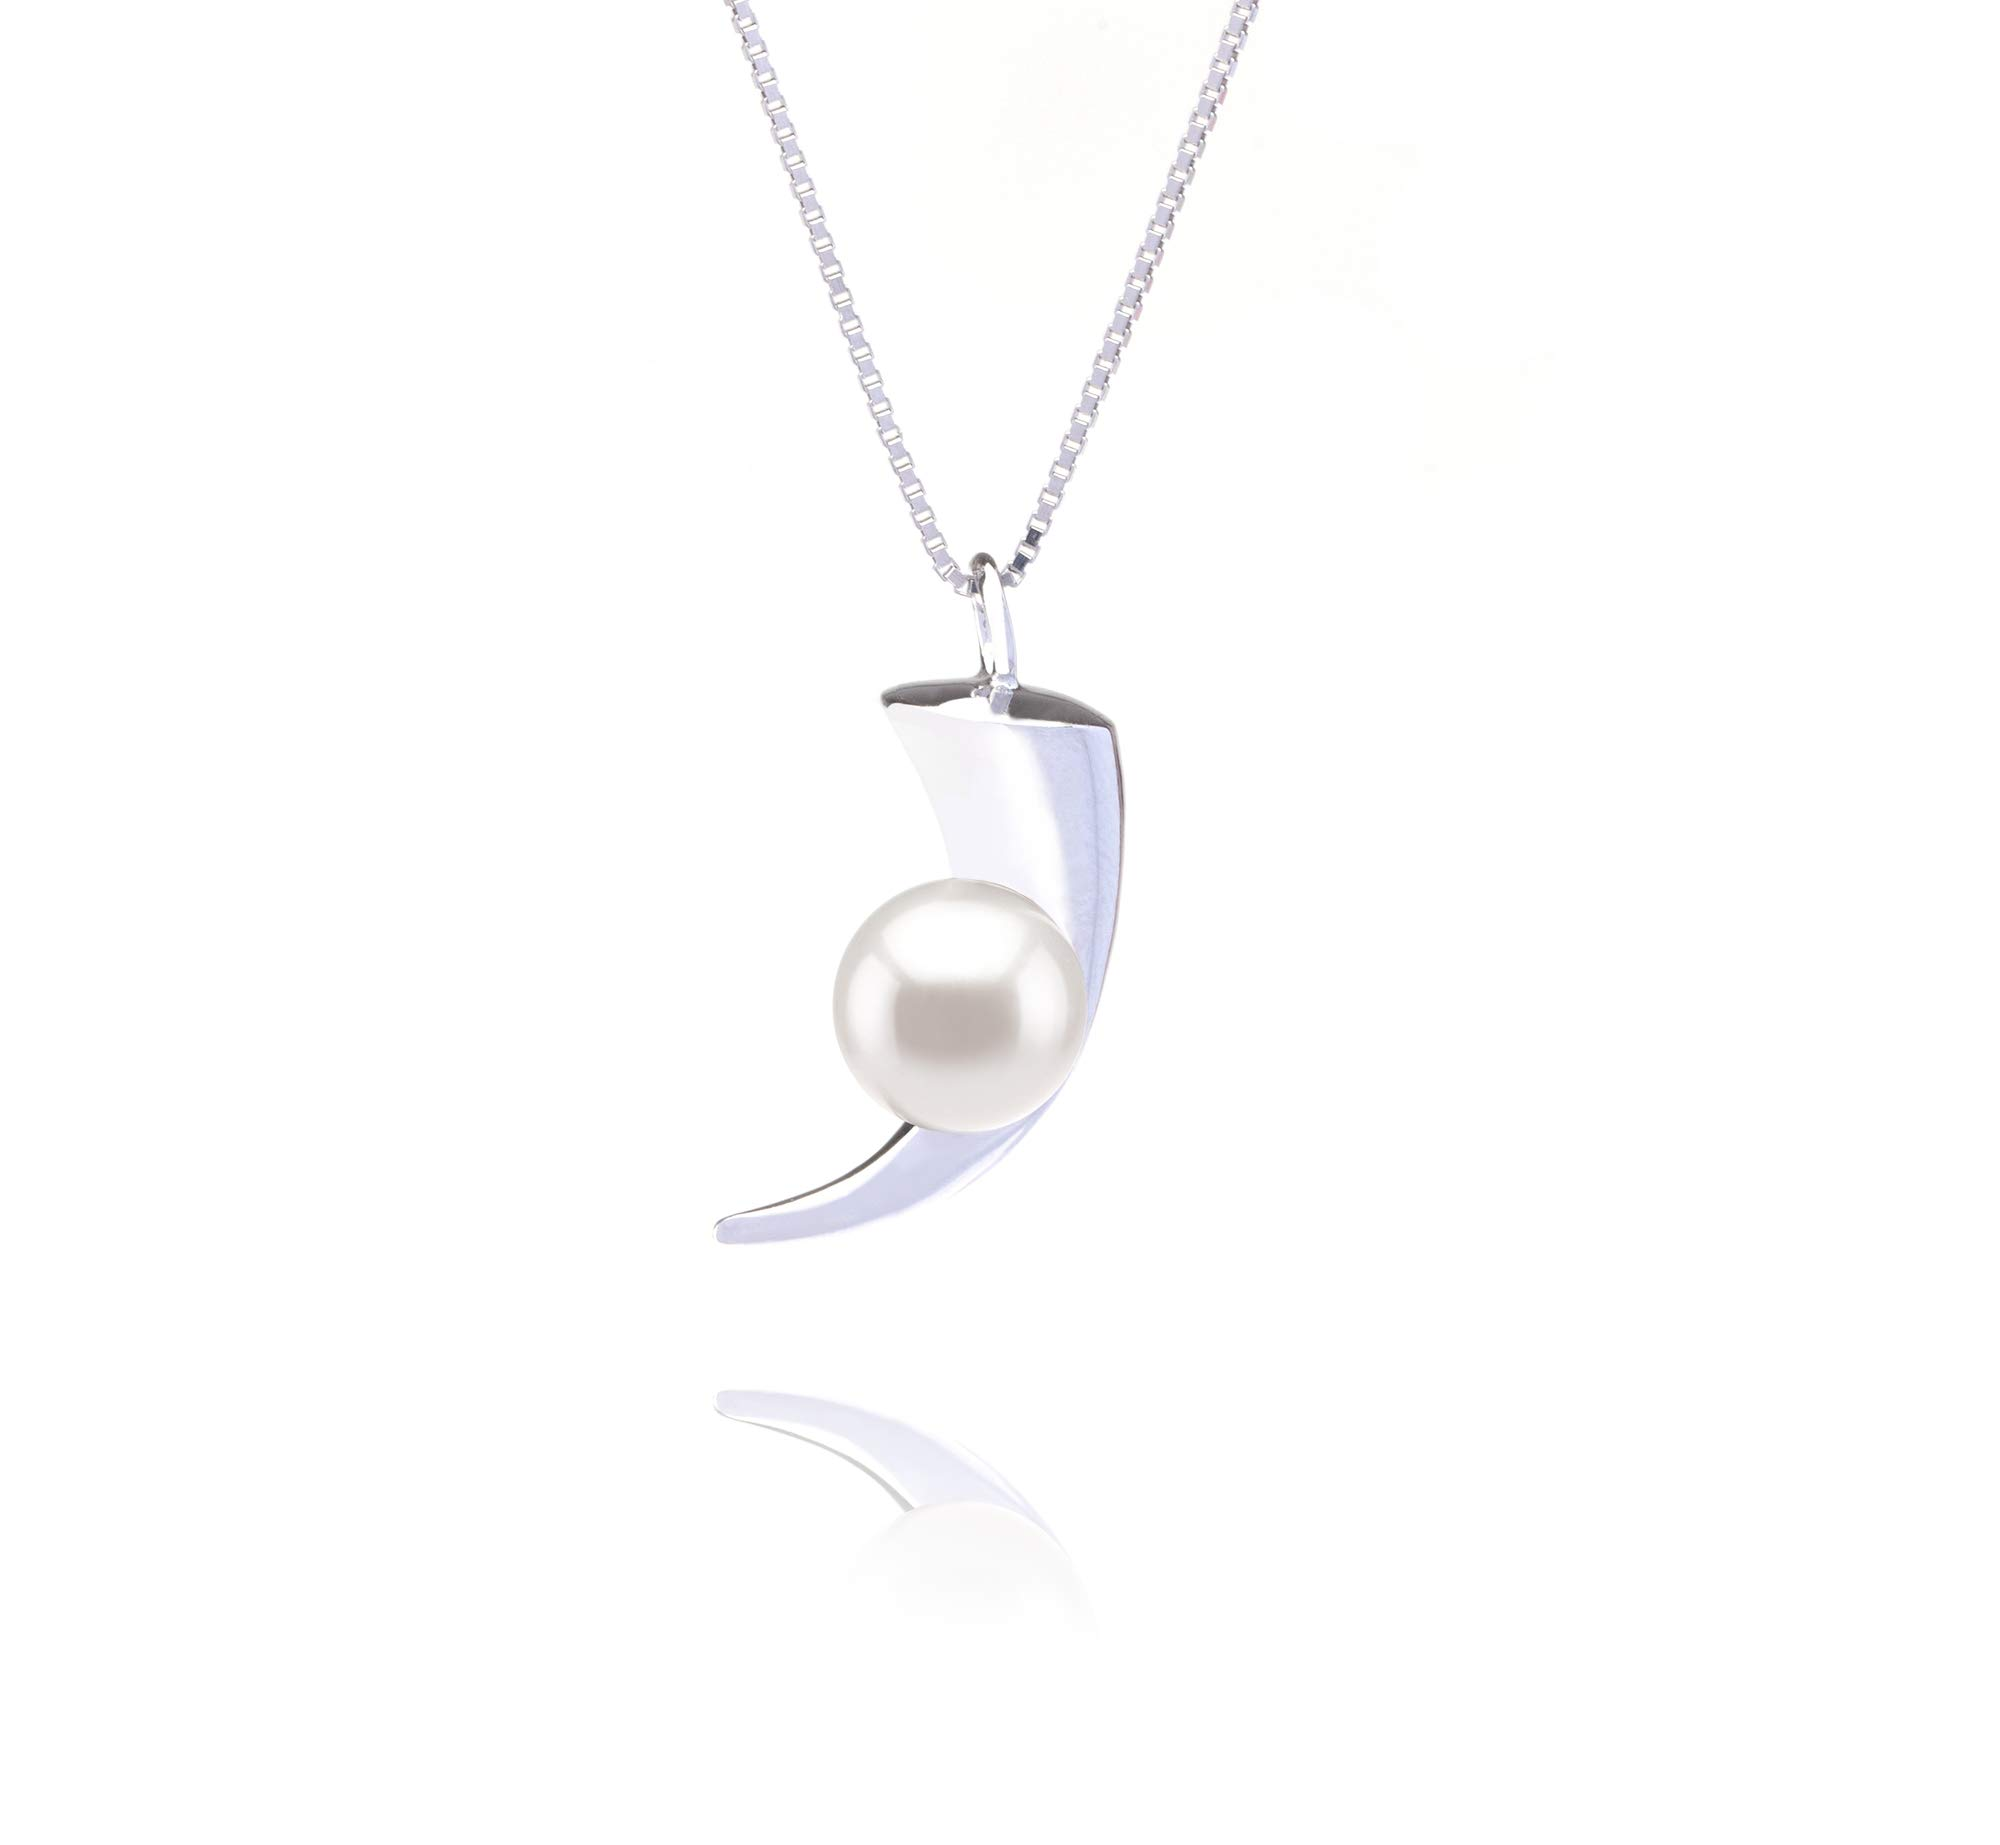 Larina White 8-9mm AAAA Quality Freshwater 925 Sterling Silver Cultured Pearl Pendant For Women by PearlsOnly